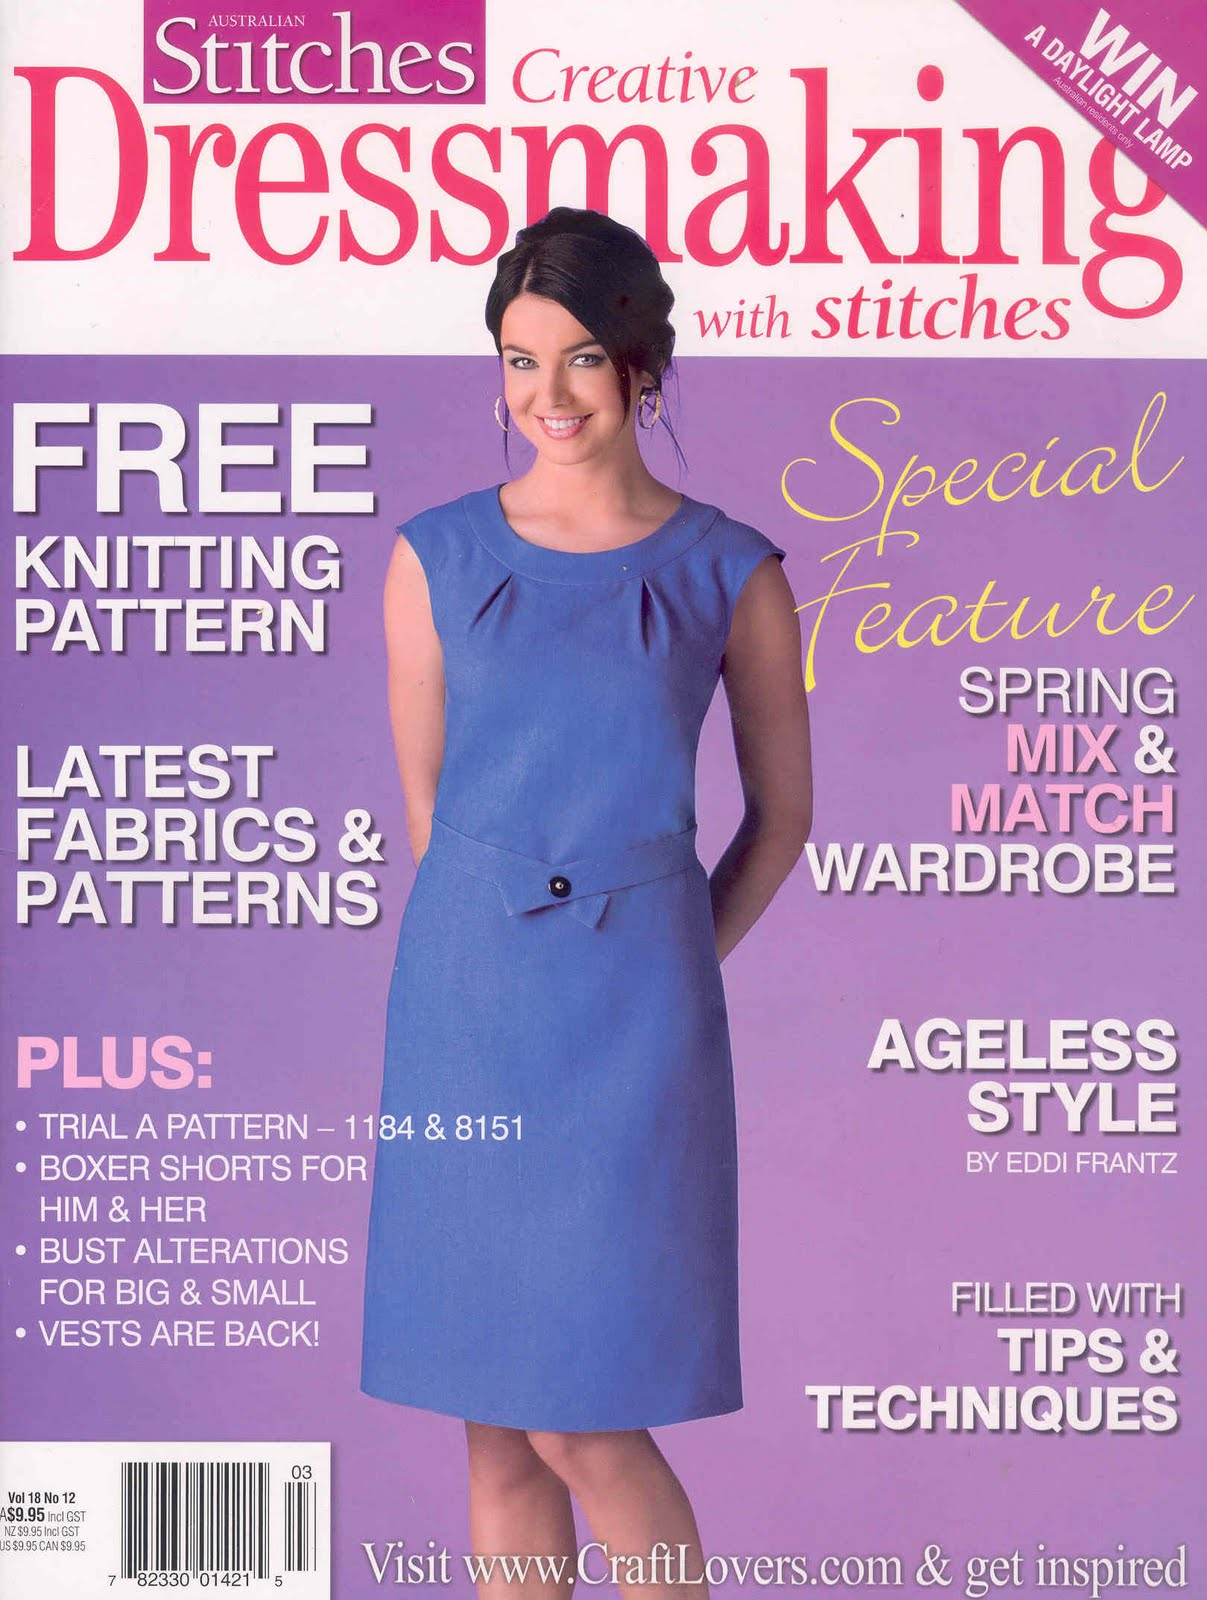 Sewtawdry magazine sources this magazines features fabulous garments made from the latest patterns 6 months behind the usa with technical instructions and step x step photos jeuxipadfo Image collections